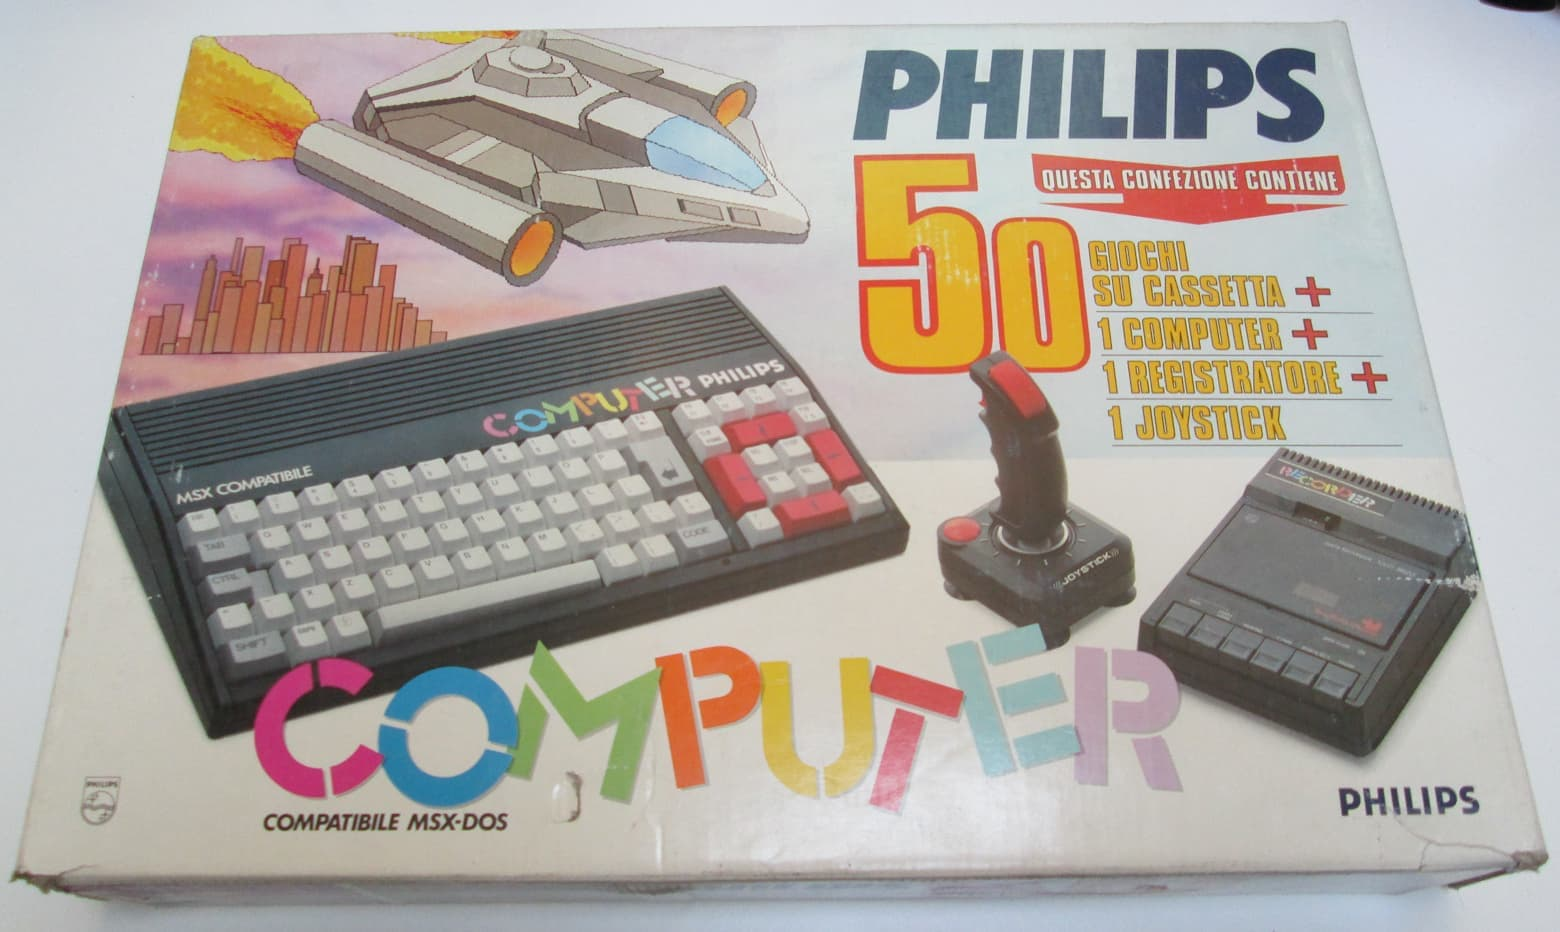 Philips NMS 800 box